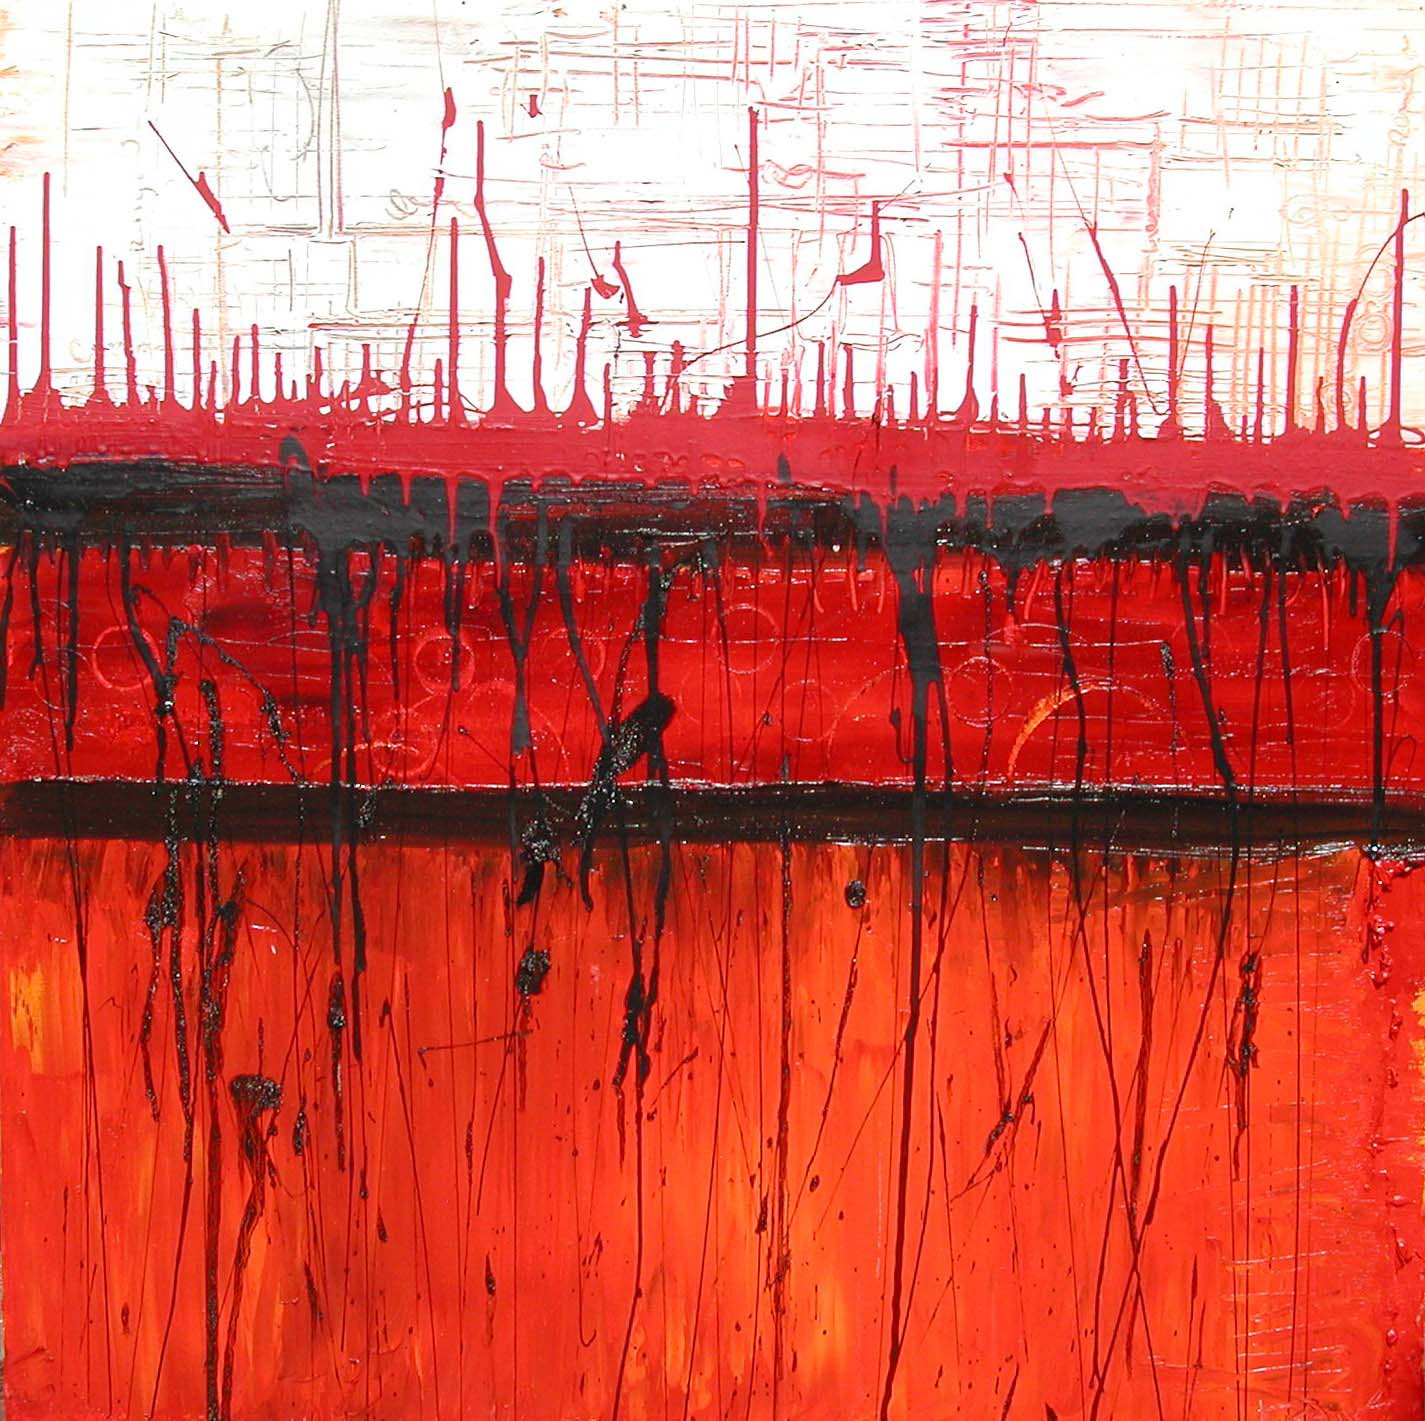 Cardinal Sin, 2002,Oil on canvas, 36 x 36 inches